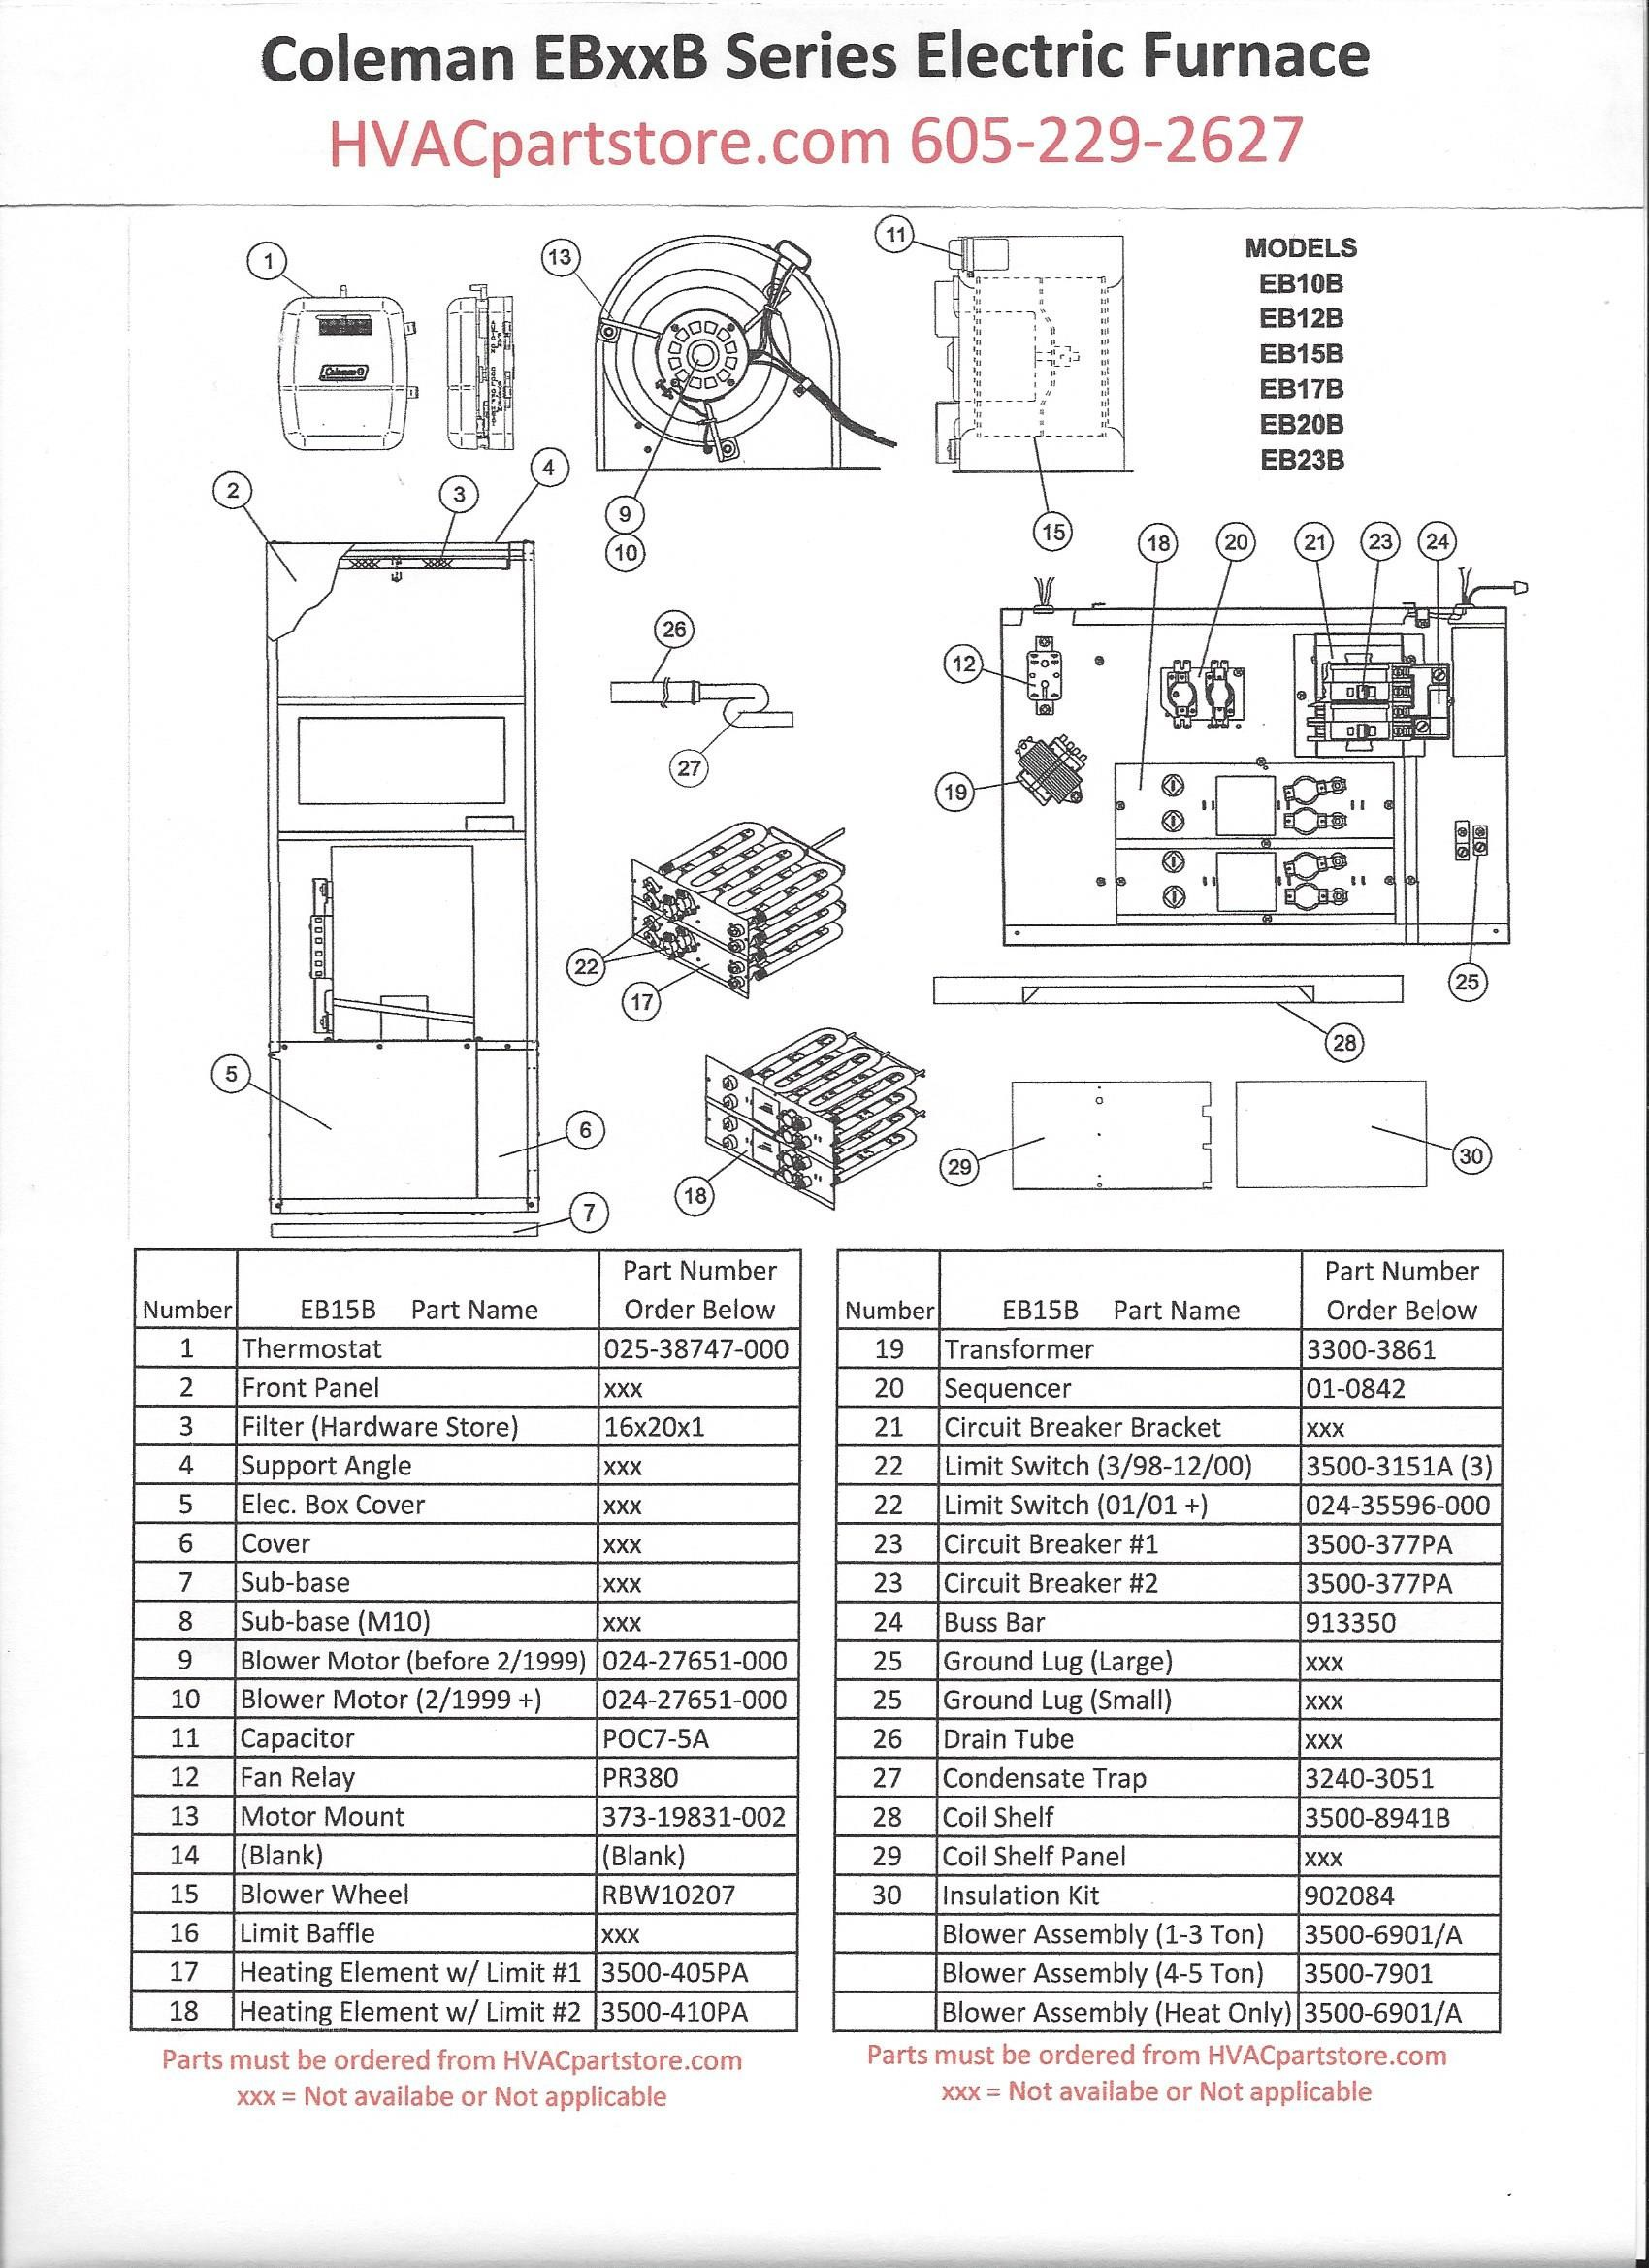 4 Plug Outlet Wiring Diagram Unique Image A Beautiful Intertherm Electric Furnace 20 For Boss Snow Plow With